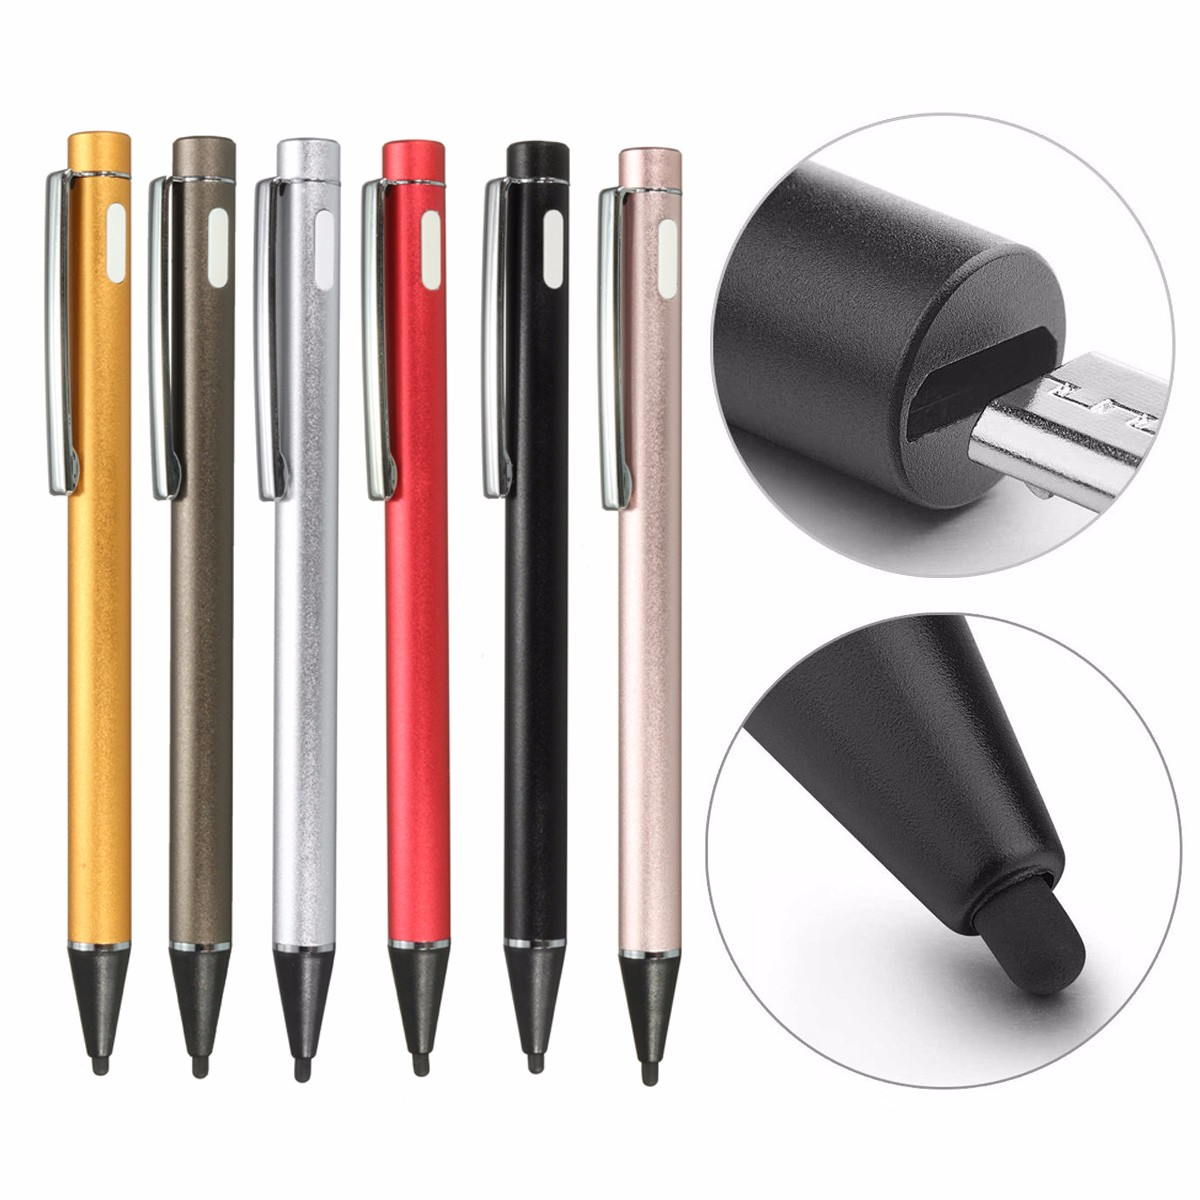 2.0mm Active Capacitive Stylus Pen, USB Charge Electronic Active Stylus Digital Pen for All Capacitive Touch Screen Devices Smartphones